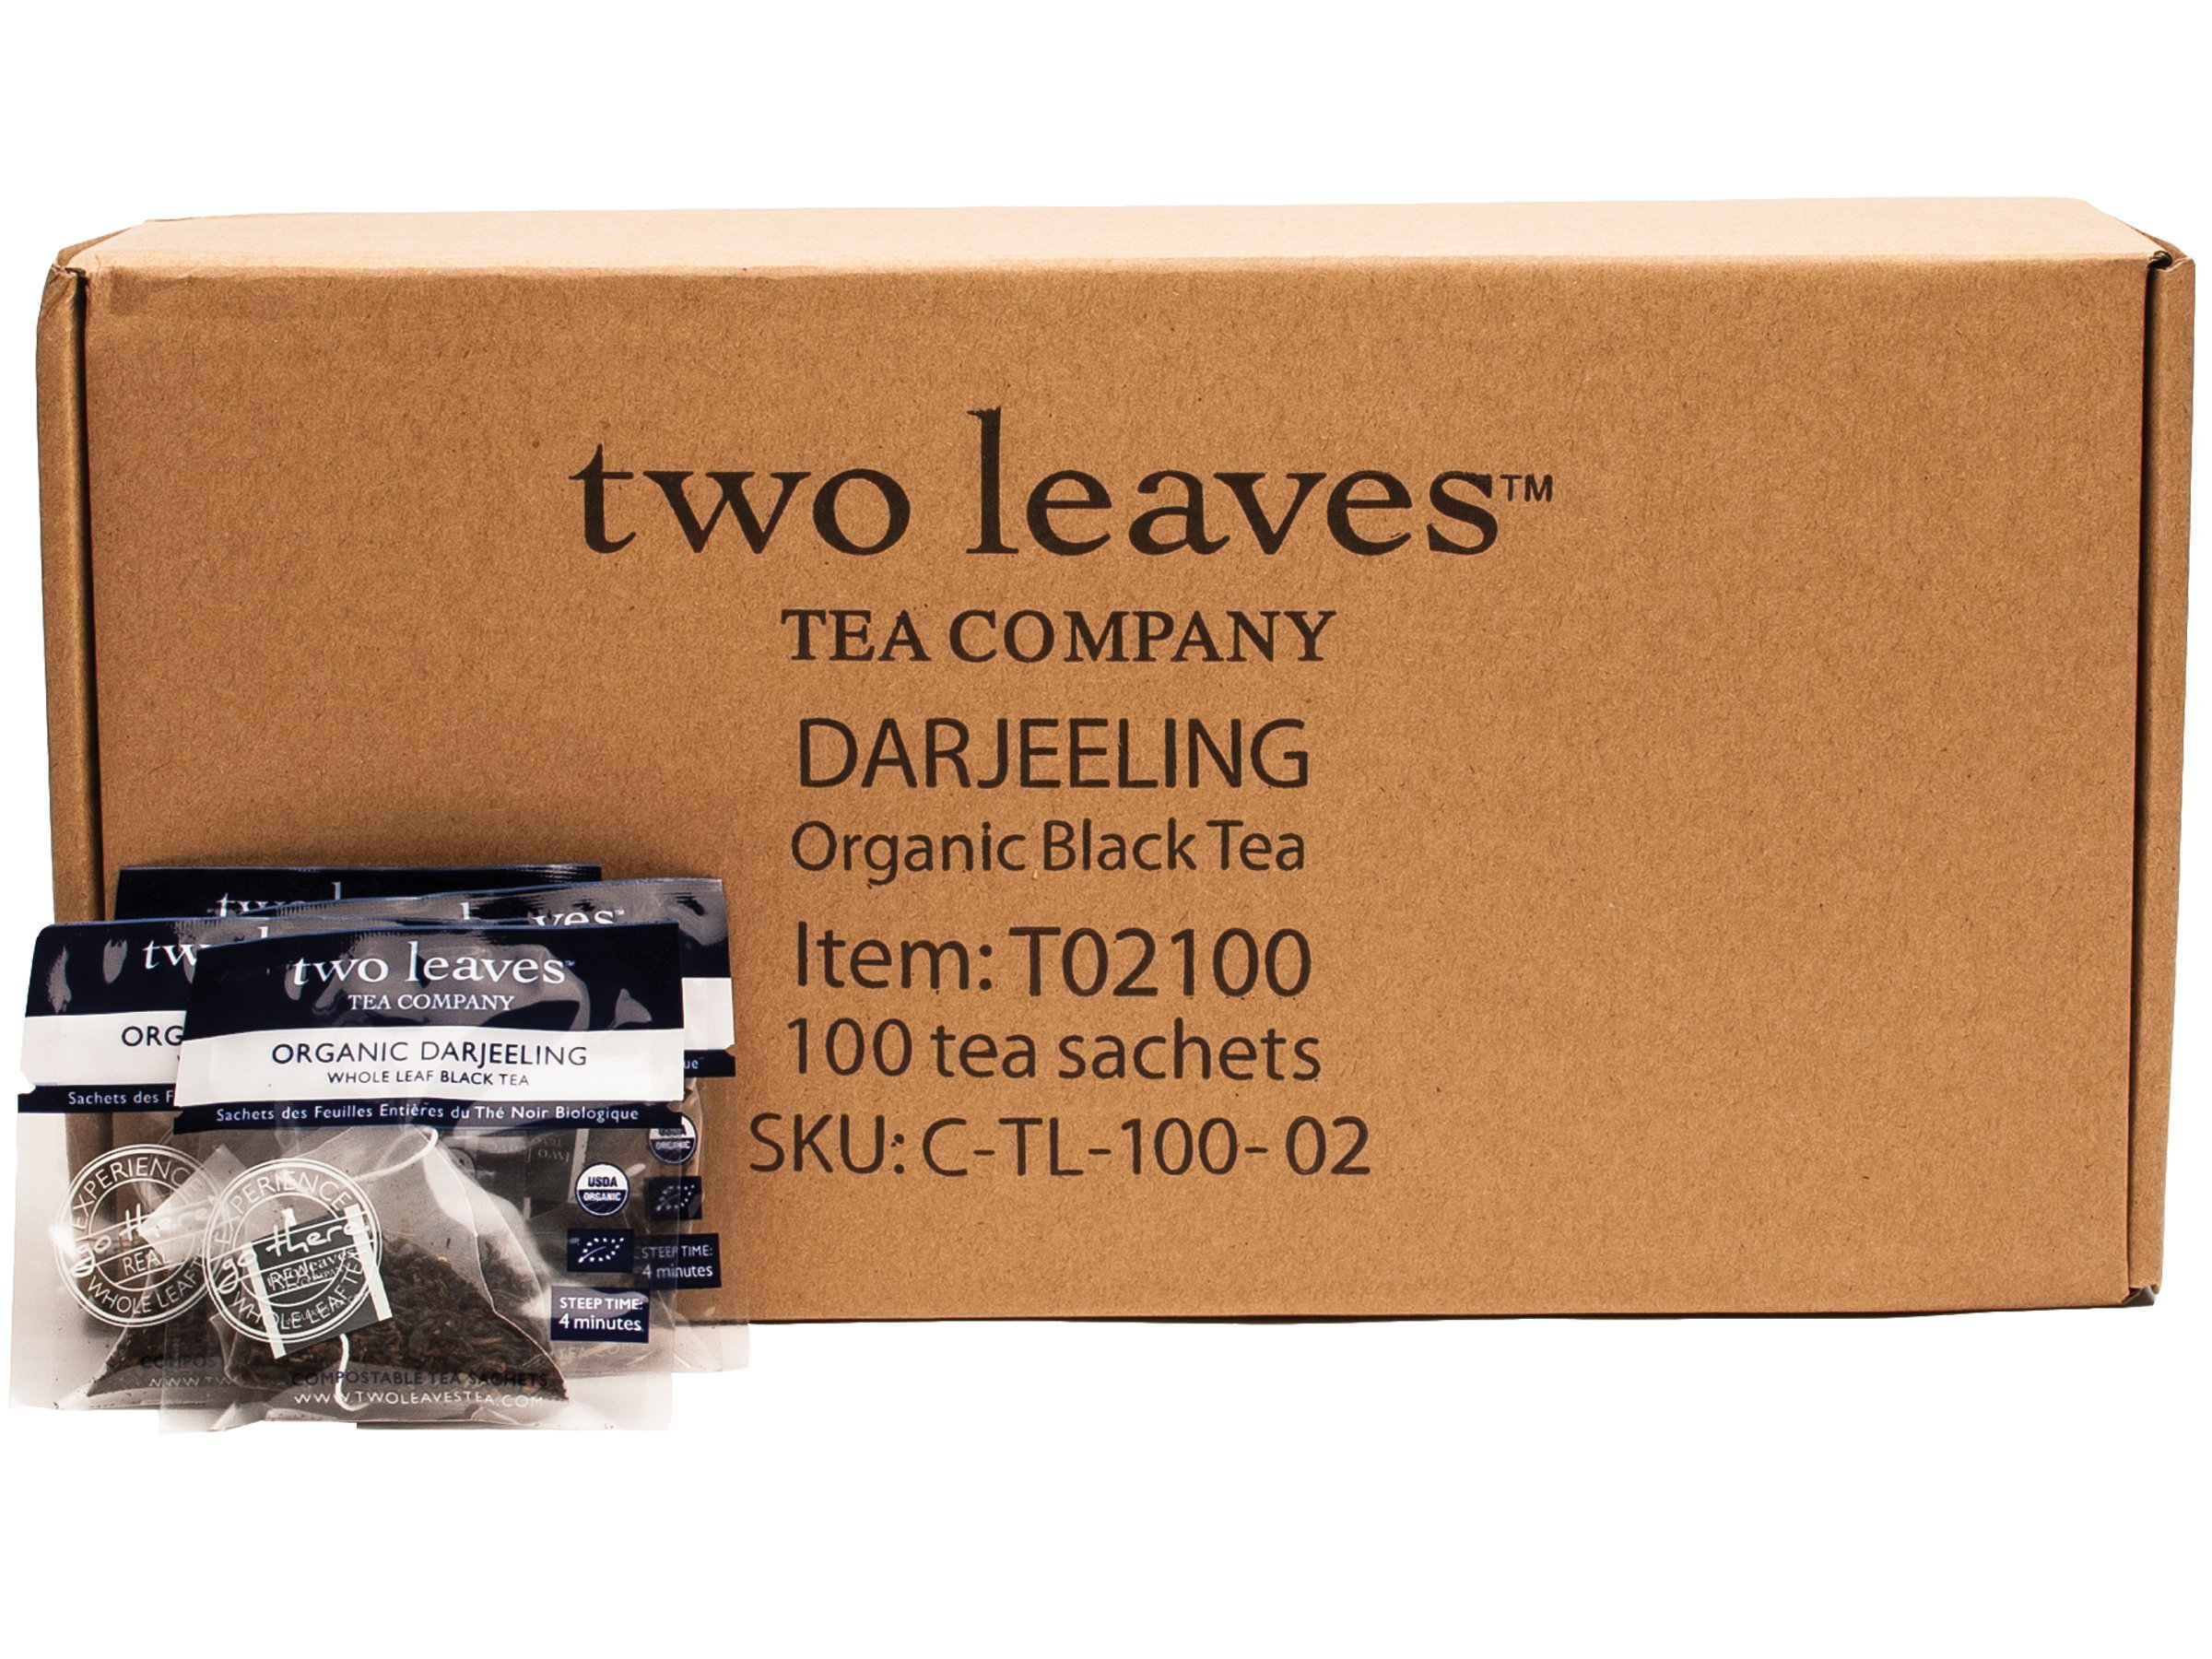 CDM product Two Leaves and a Bud Organic Darjeeling Black Tea Bags, 100 Count, Organic Whole Leaf Full Caffeine Black Tea in Pyramid Sachet Bags, Delicious Hot or Iced with Milk, Sugar, Honey or Plain big image